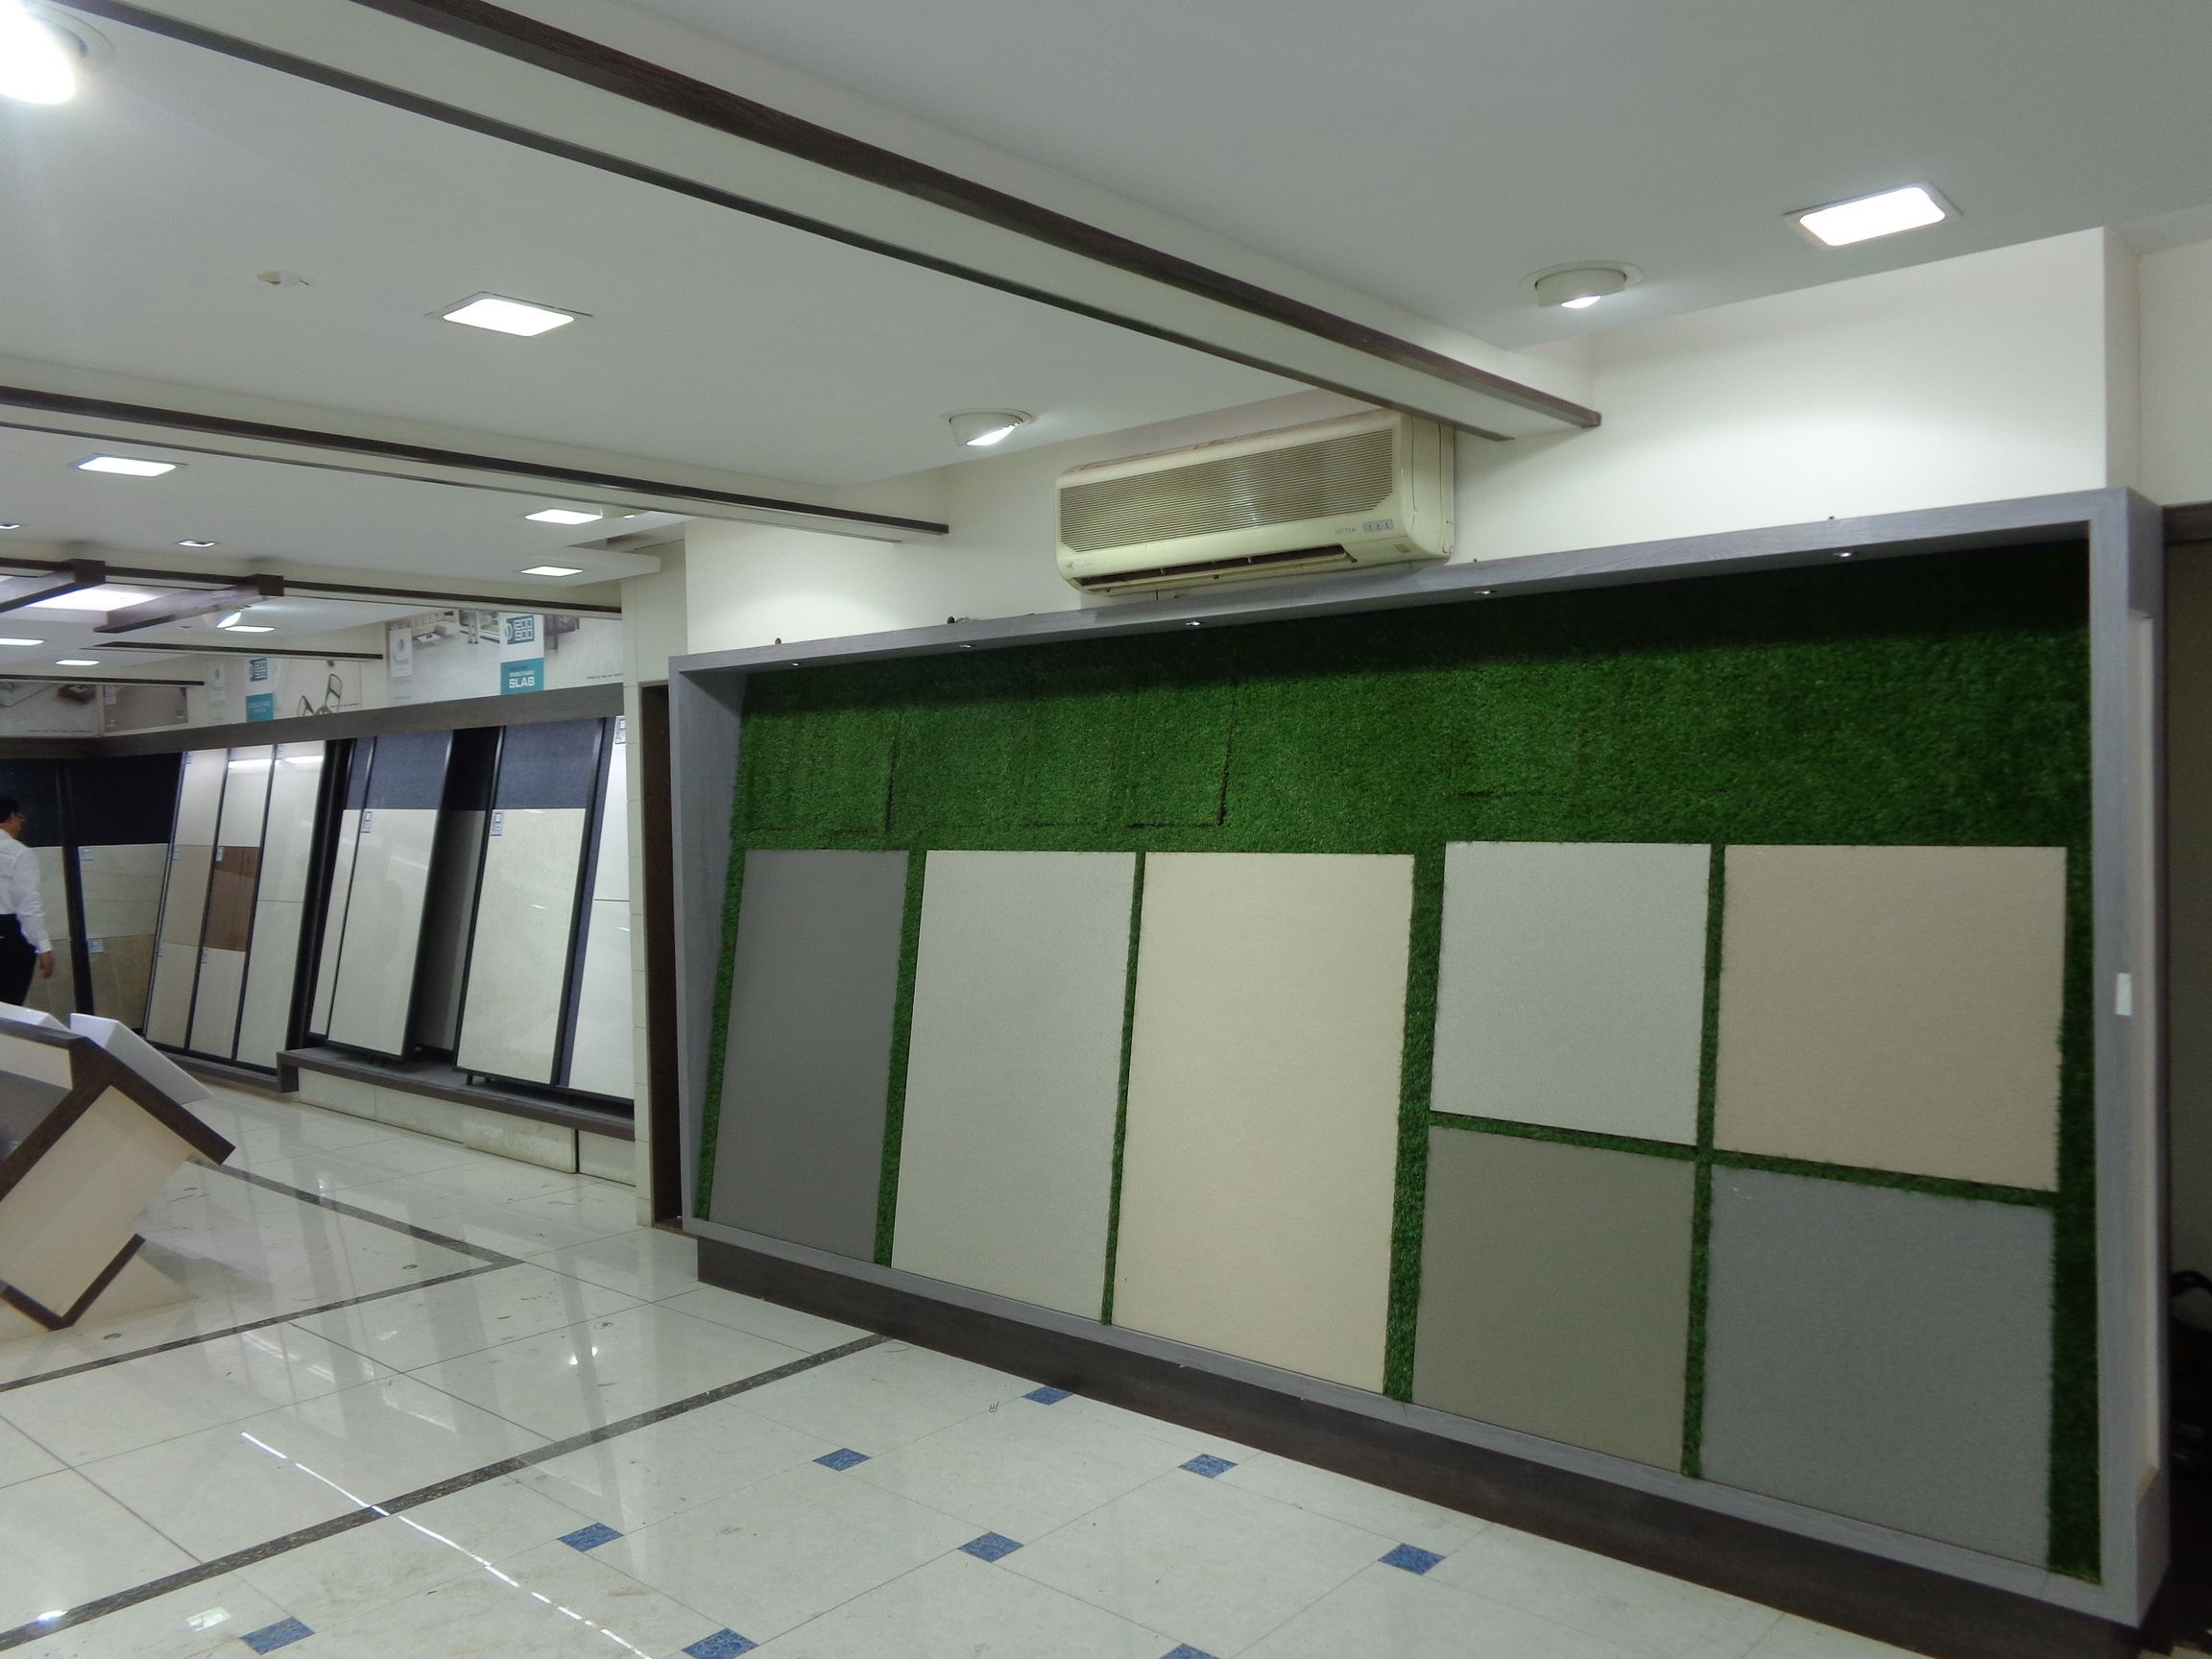 Wide range of wall tiles & floor tiles in our mumbai show